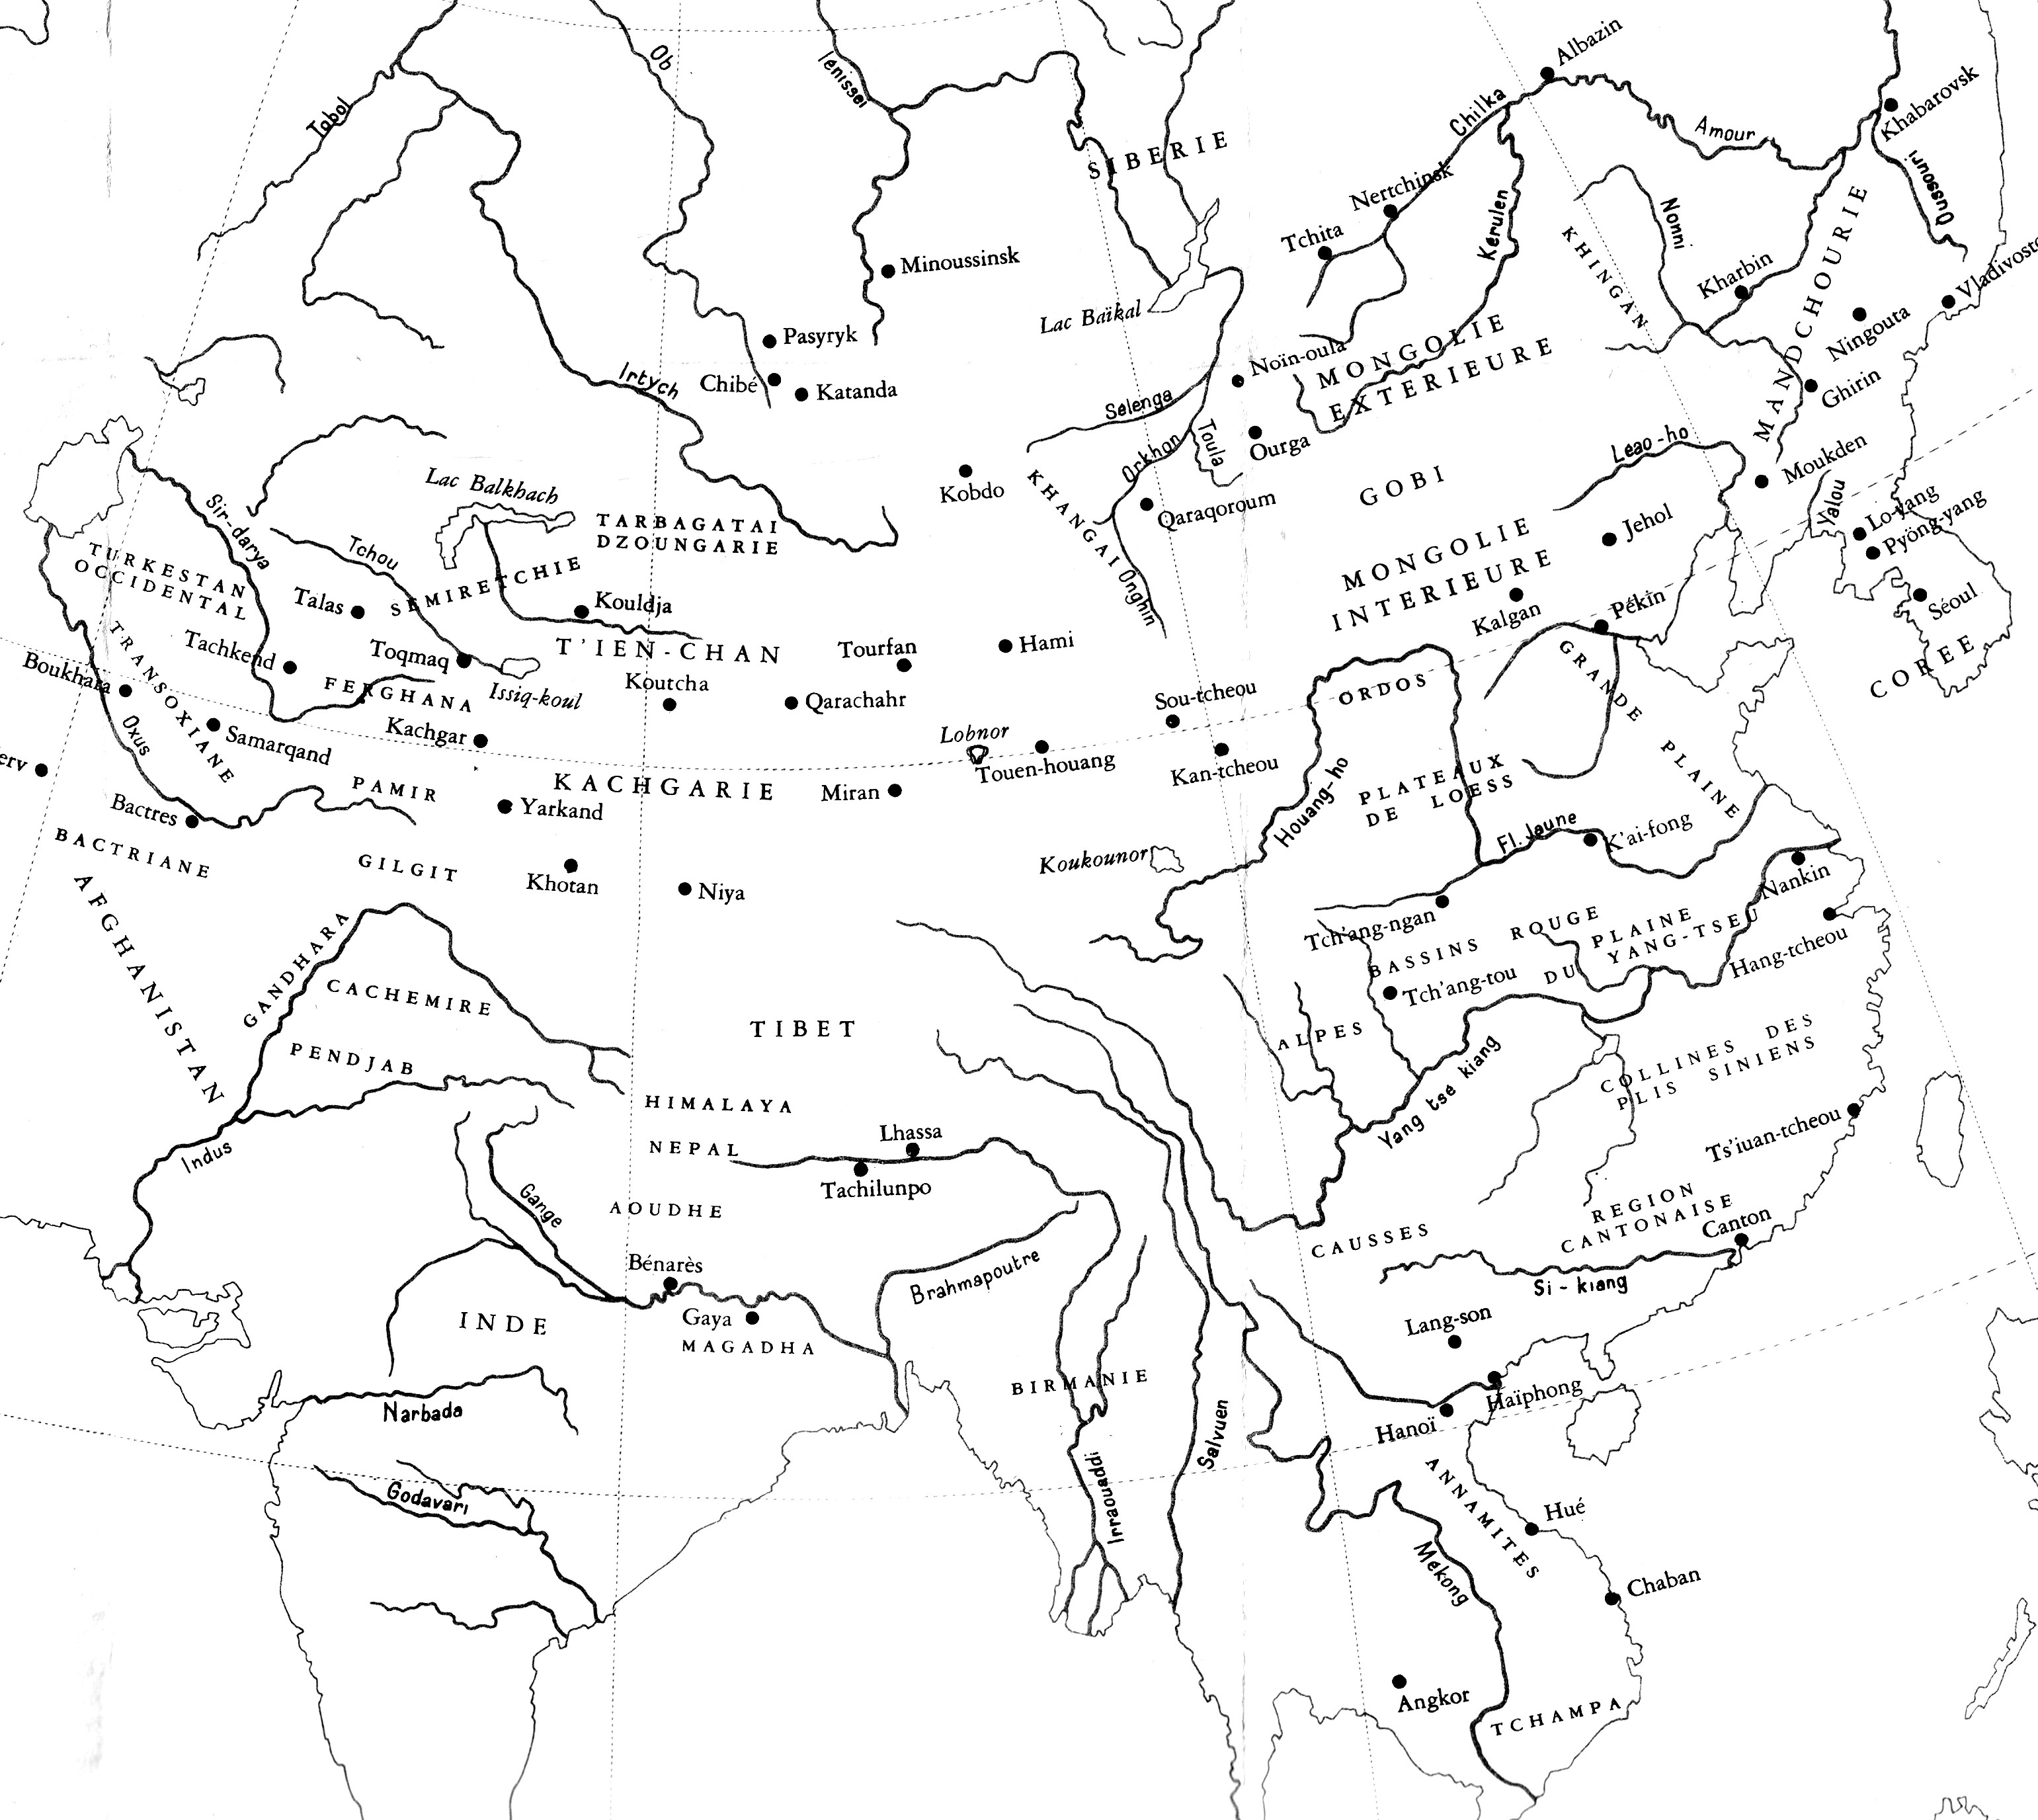 Continent+asiatique+carte